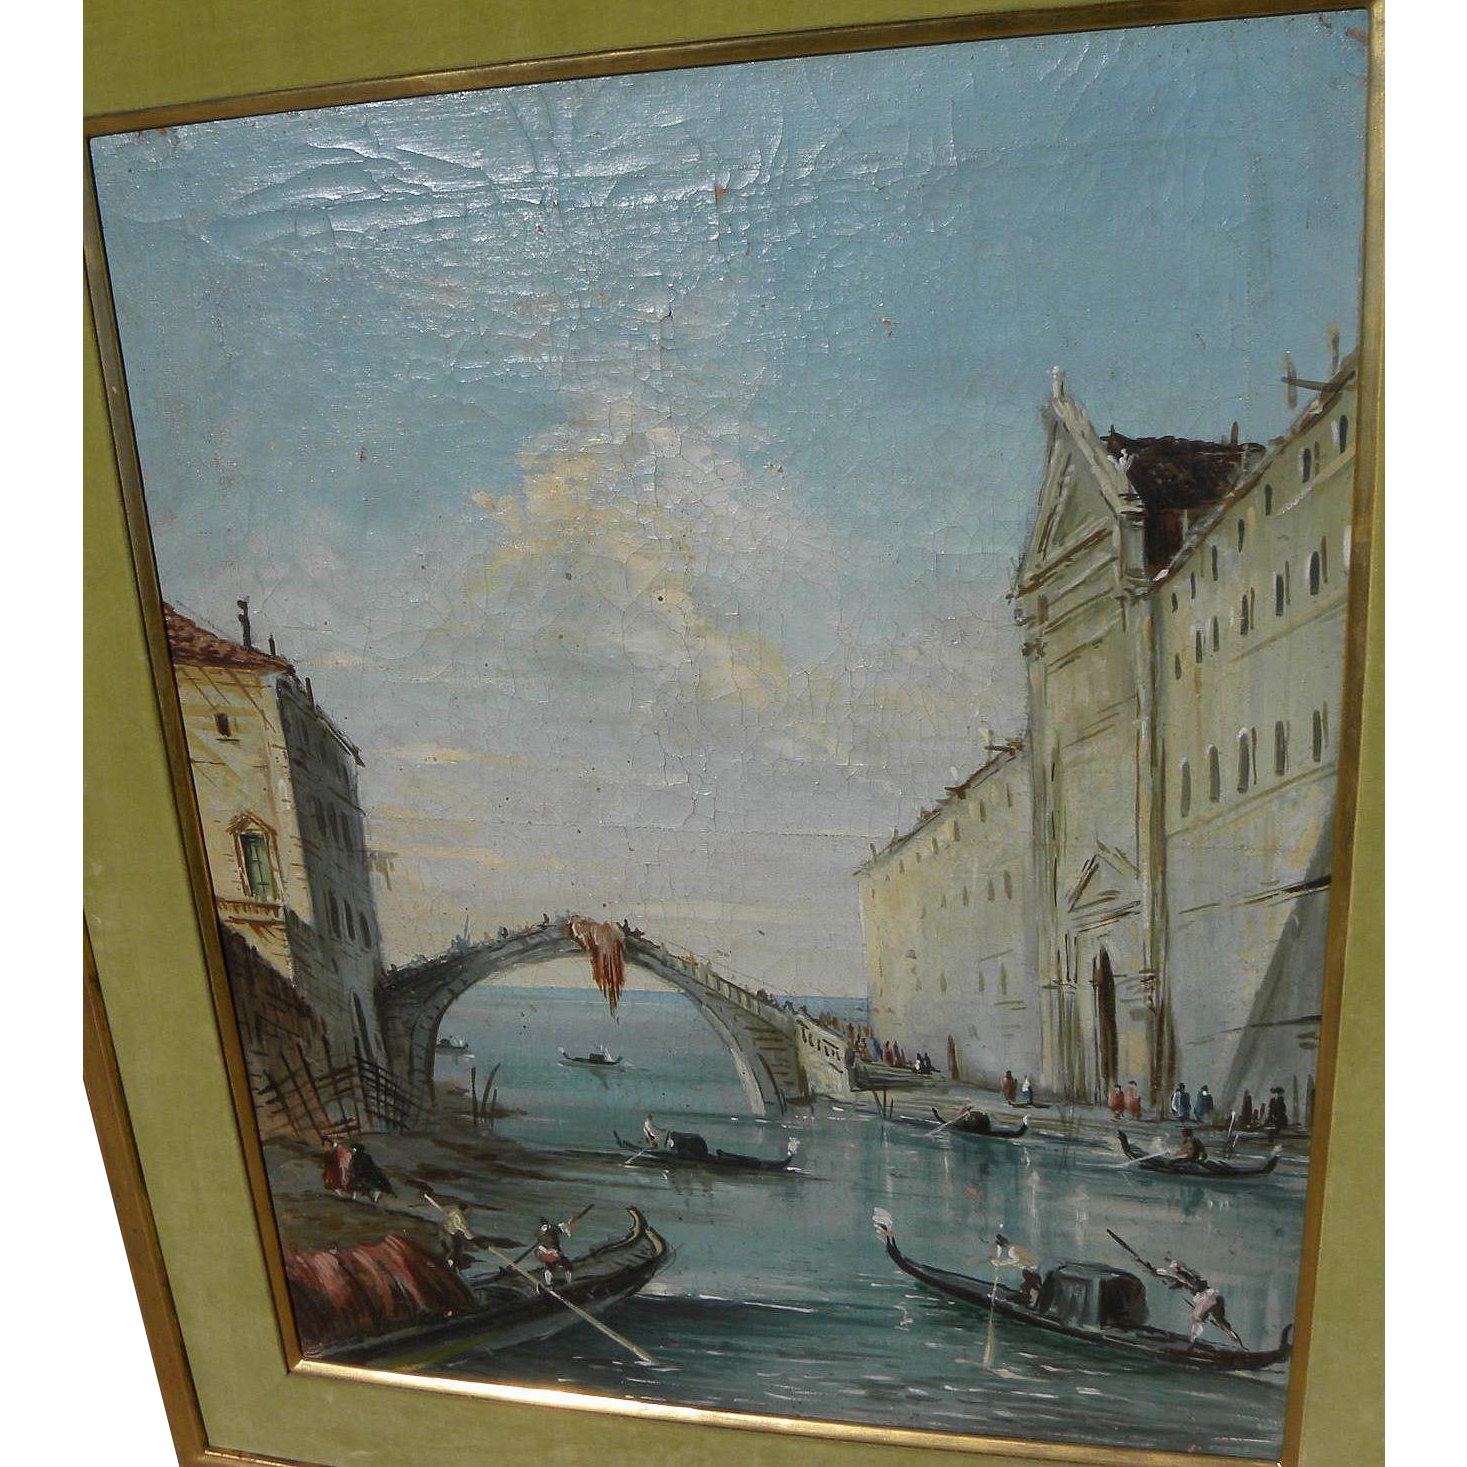 Antique painting of Venice Italy gondolas and architecture in the style of 18th century Old Master Francesco Guardi